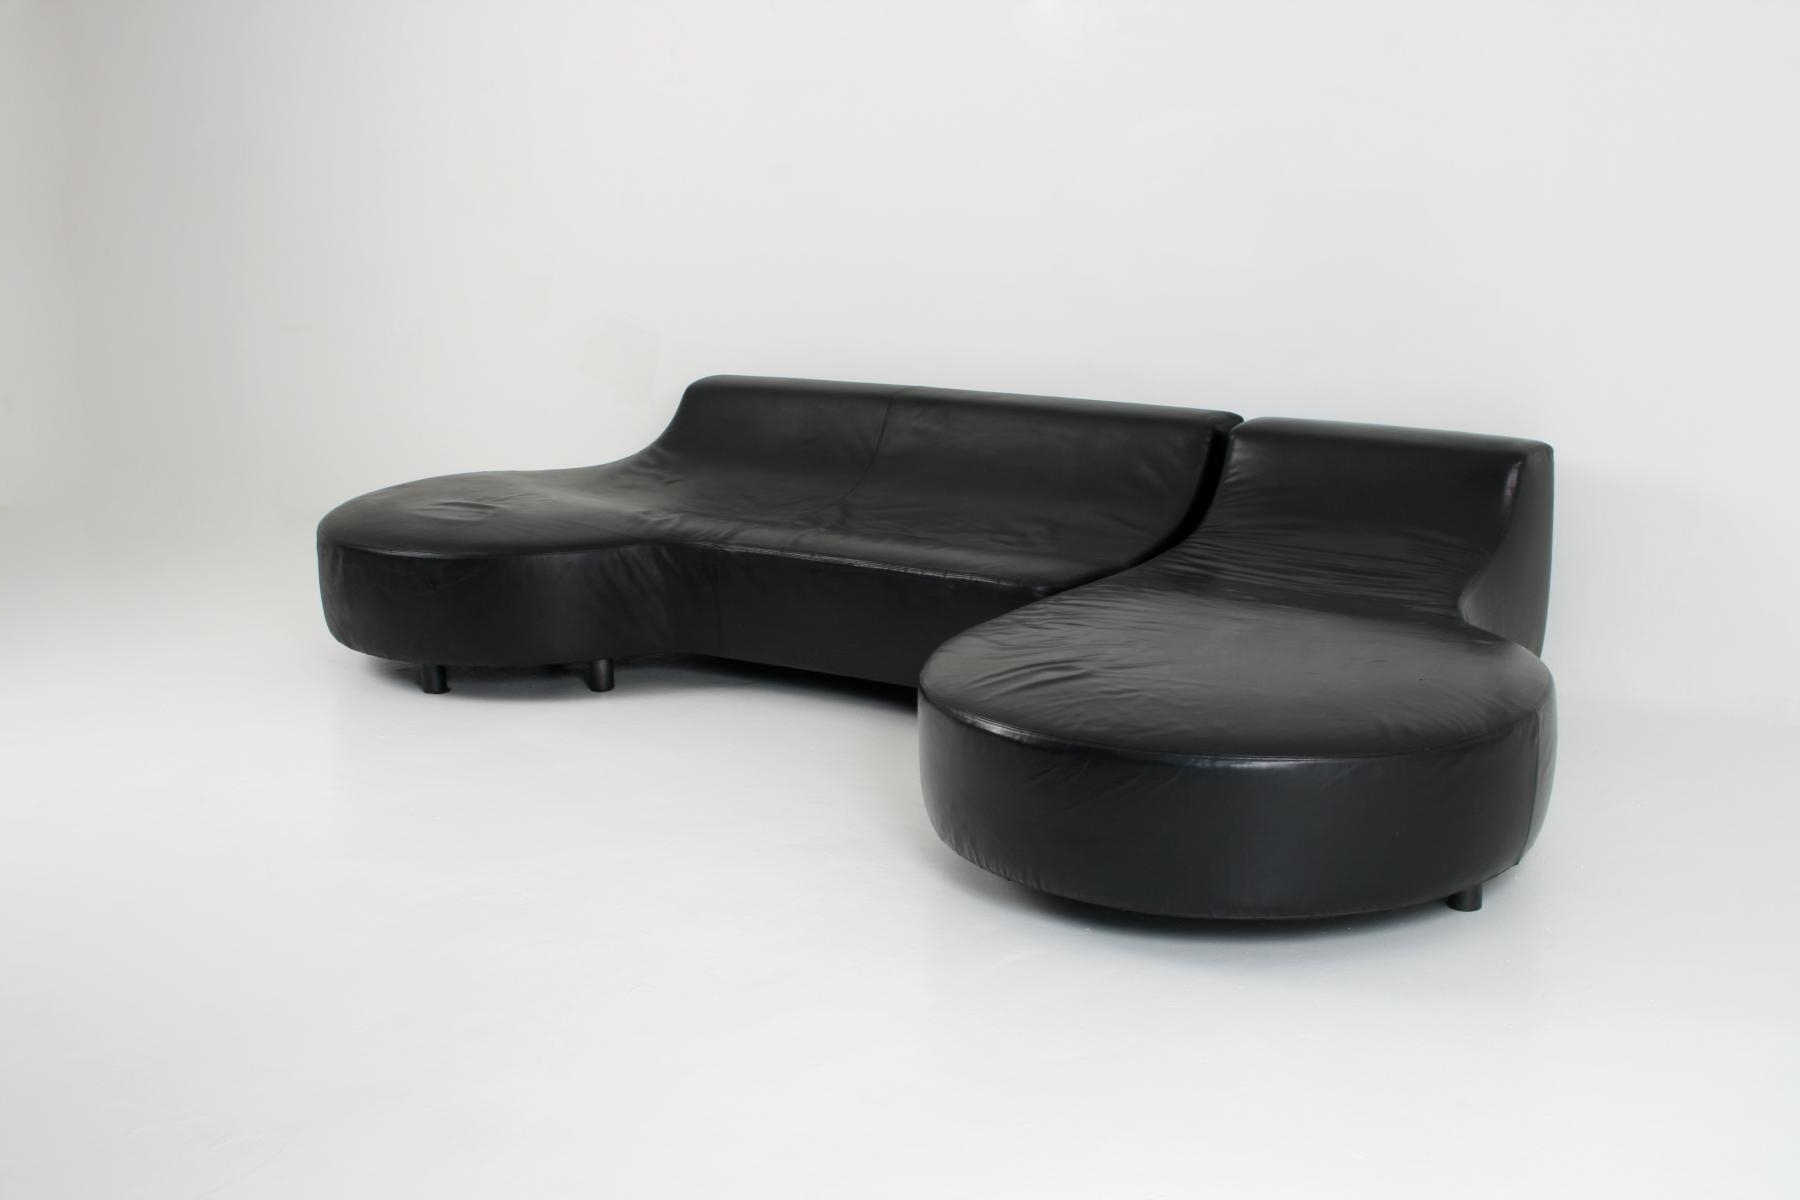 Most Popular Black Leather Chaise Loungerodolfo Dordini For Minotti For Inside Black Leather Chaise Lounges (View 10 of 15)